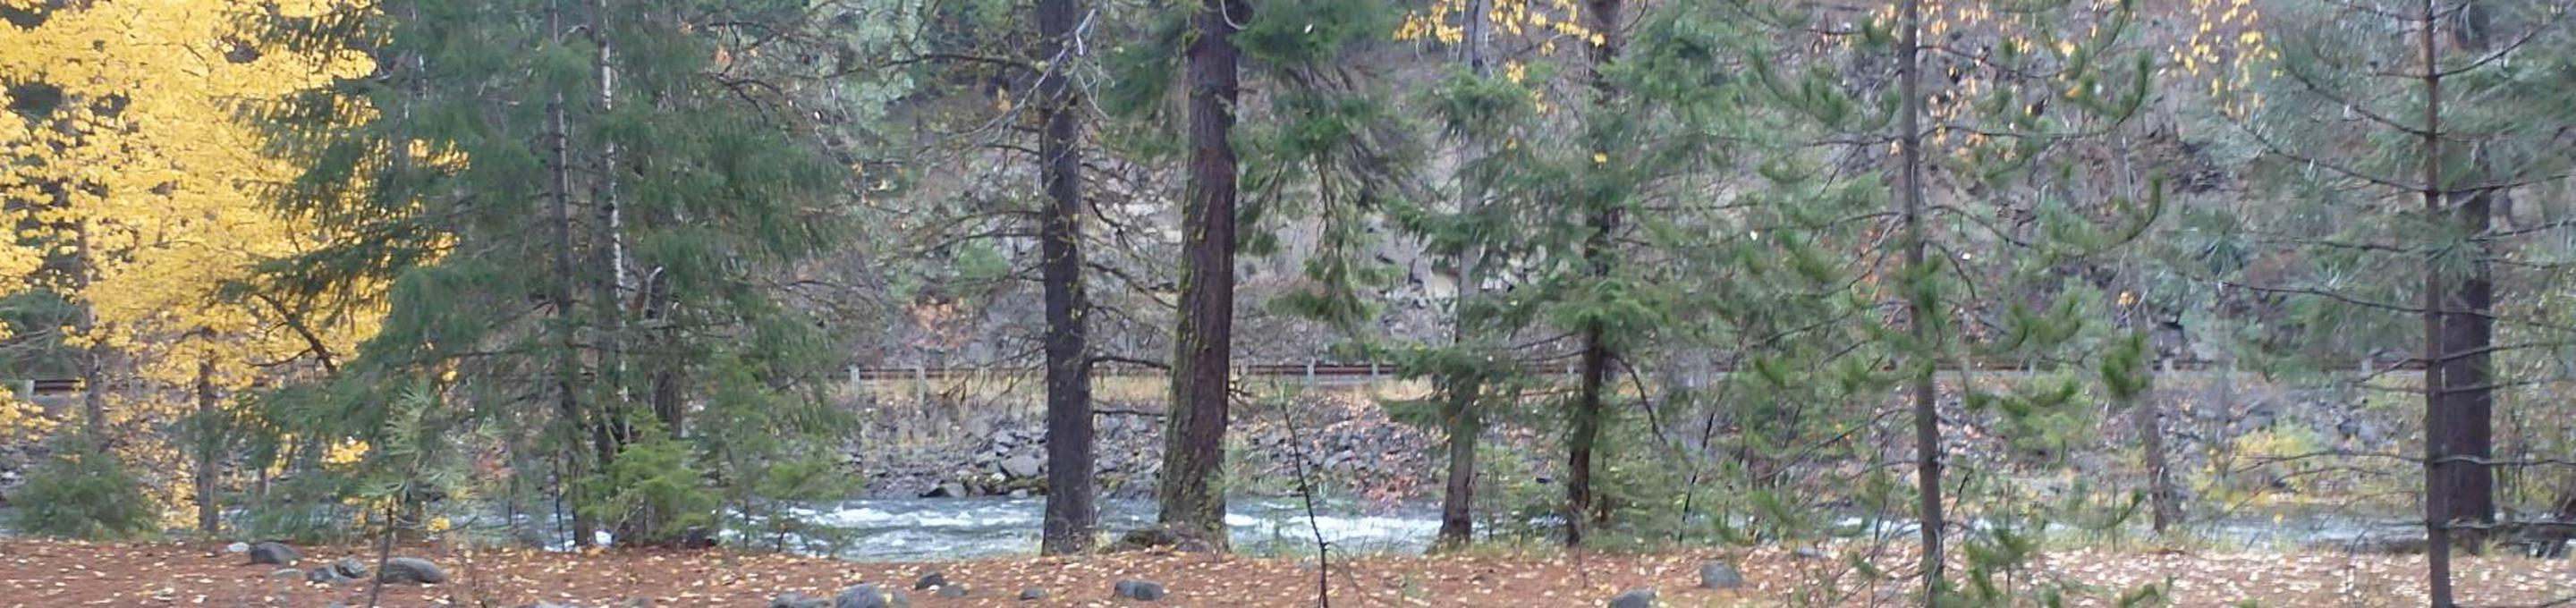 Looking at river through mixed conifer forest.Halfway Flat Campground